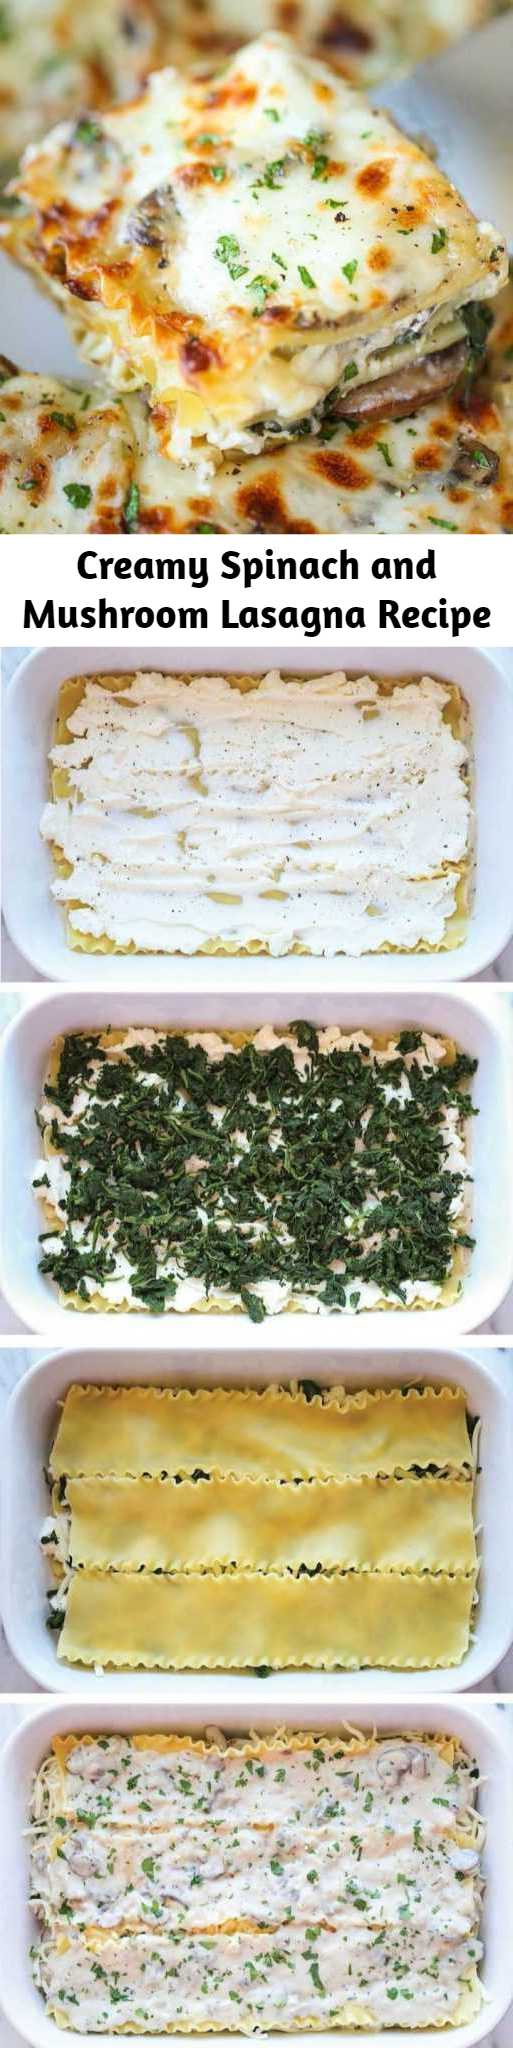 Creamy Spinach and Mushroom Lasagna Recipe - This is sure to become a family favorite. Best of all, it's freezer-friendly and can also be made ahead of time!